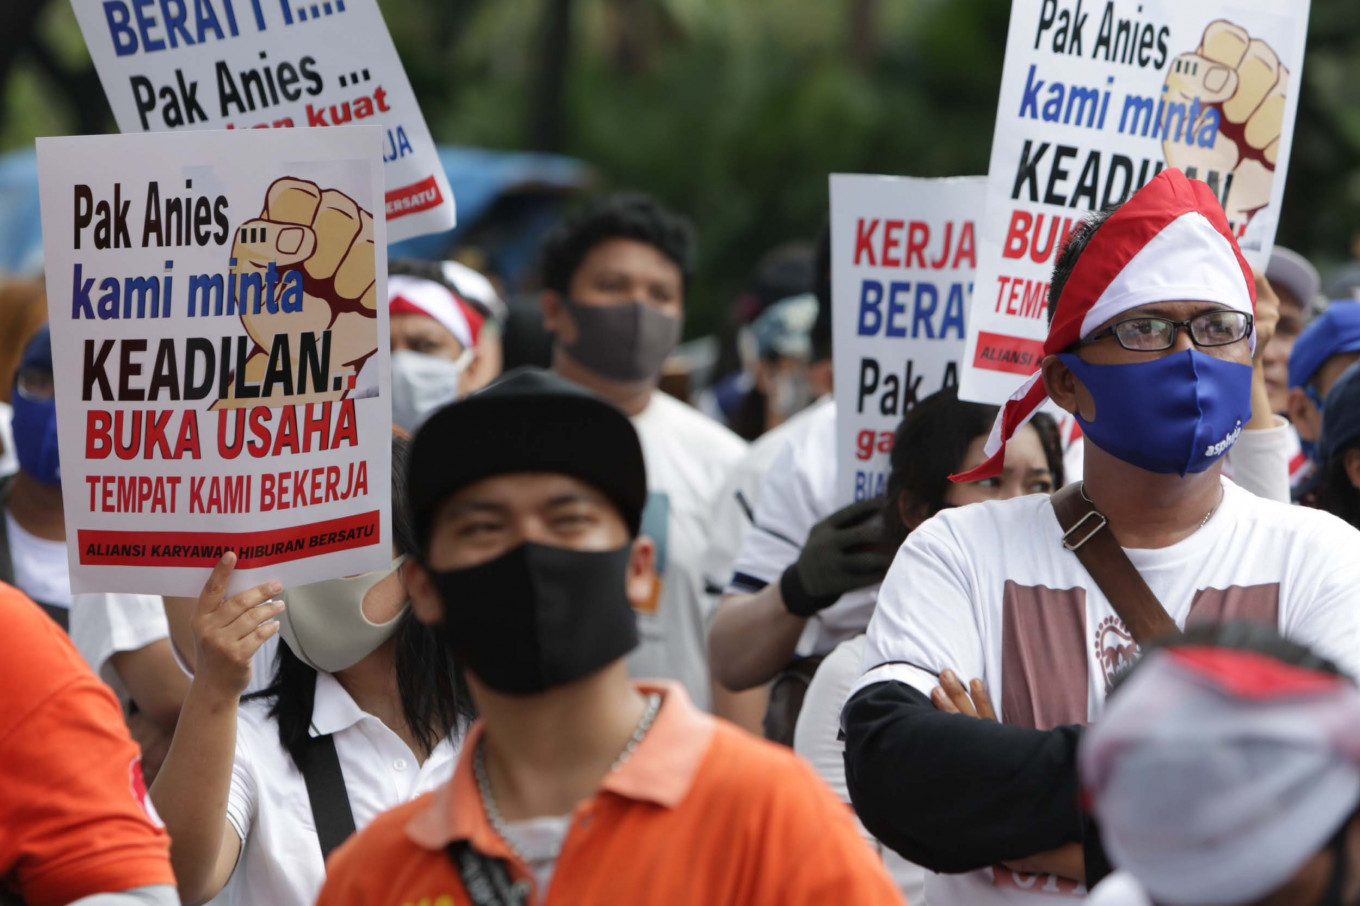 Association stages rally to demand Jakarta administration allow entertainment venues to reopen